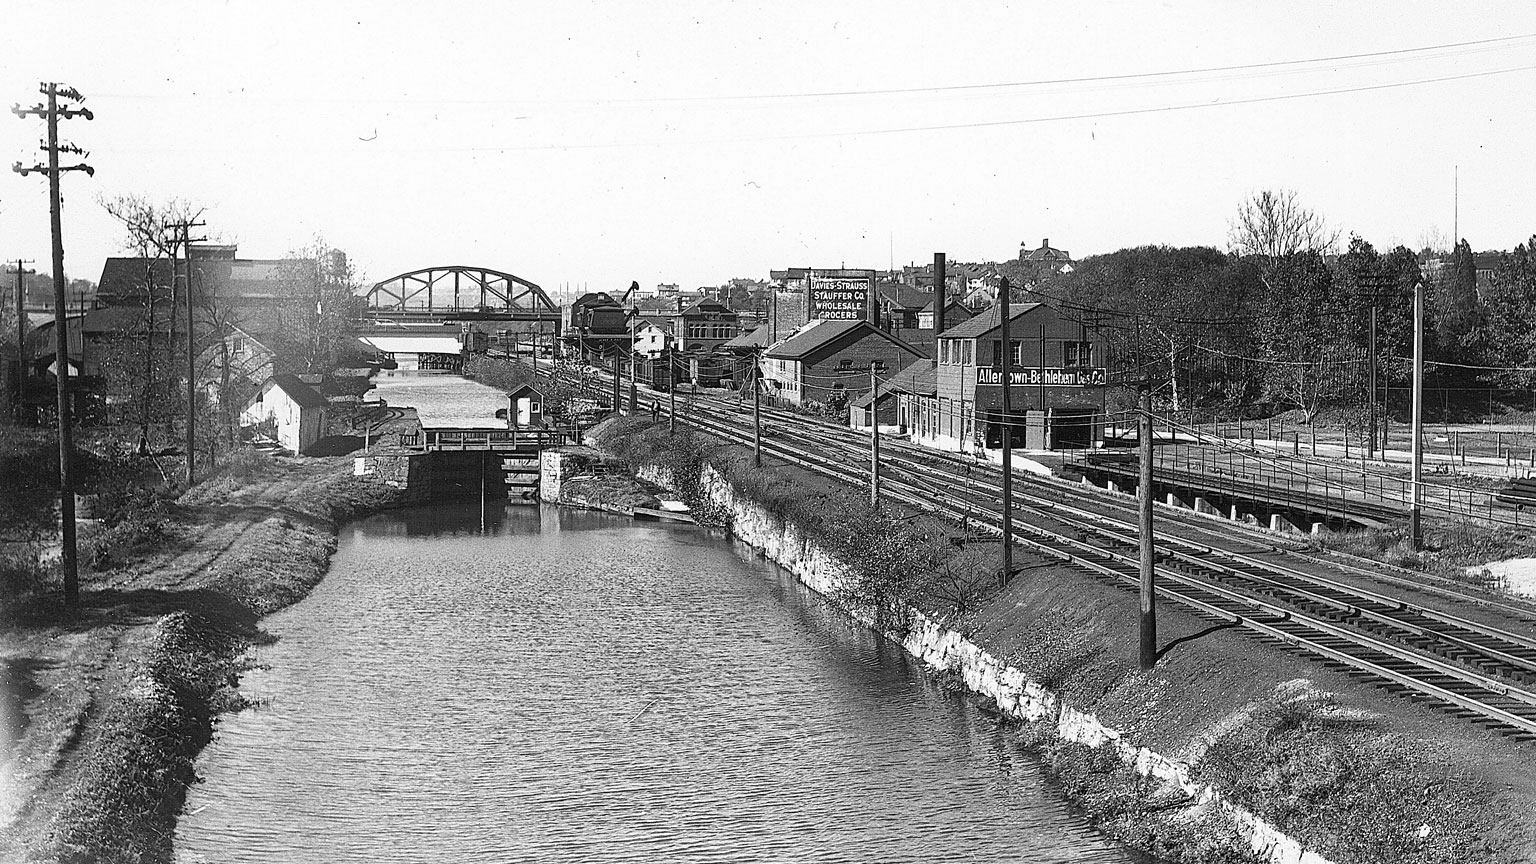 Railroads were built to follow canals because industry was built up along the canals.